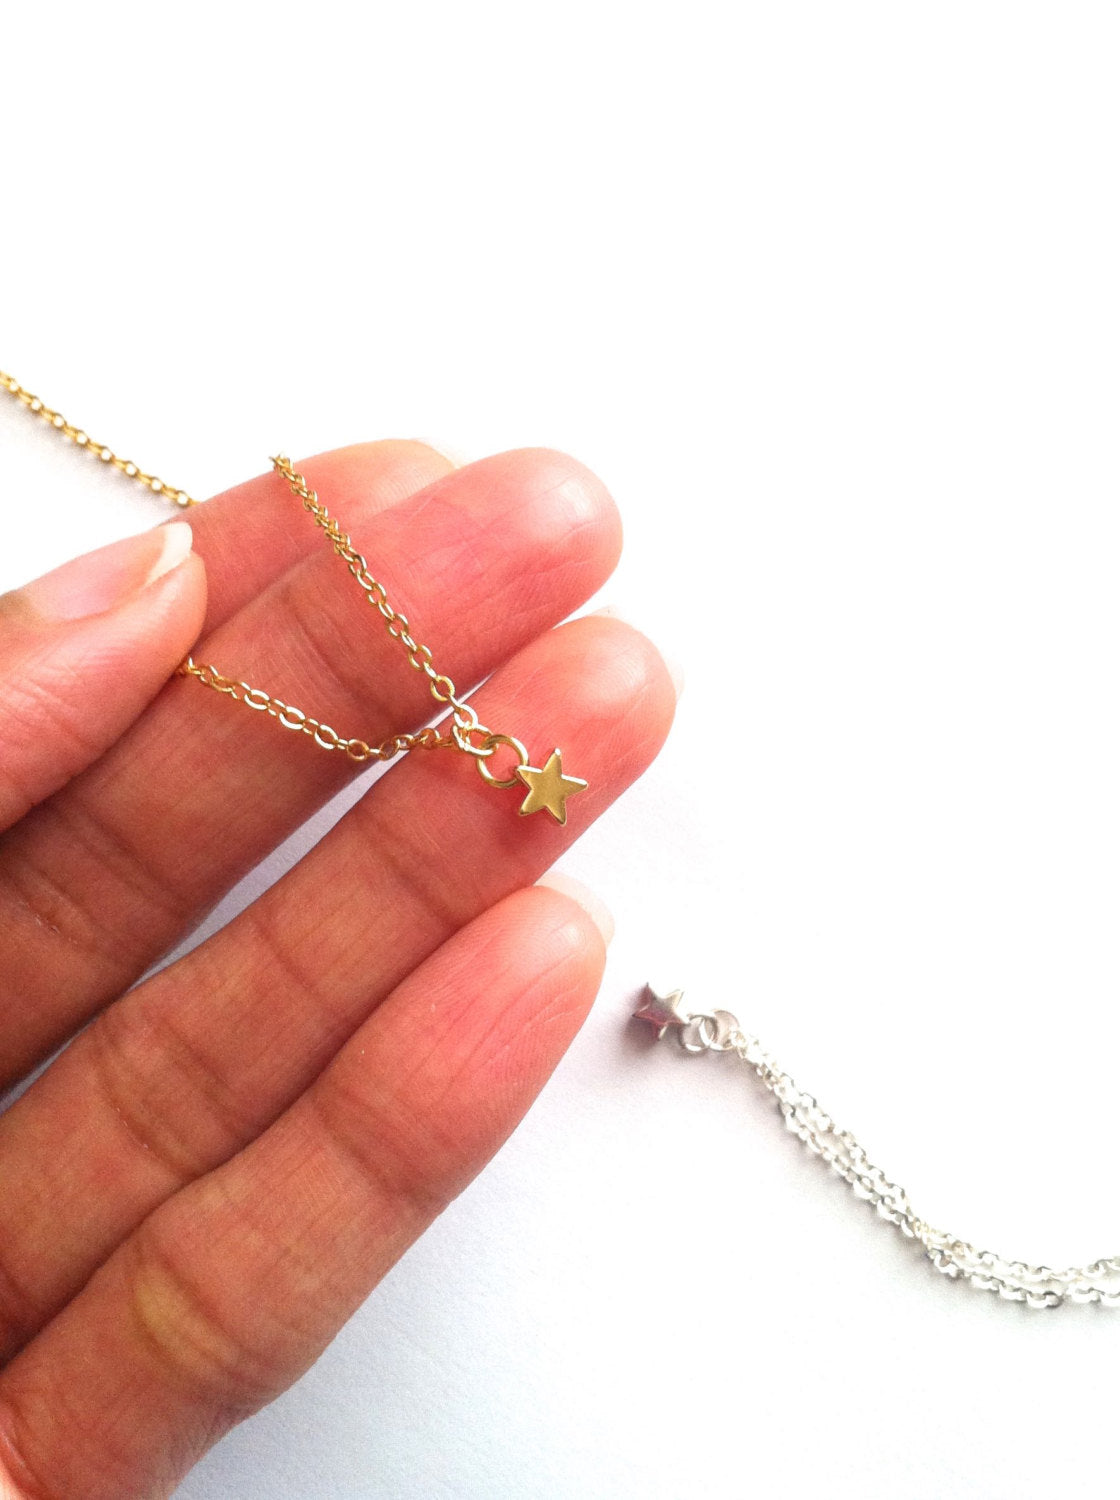 Minimalist Tiny Star Necklace | IB Jewelry